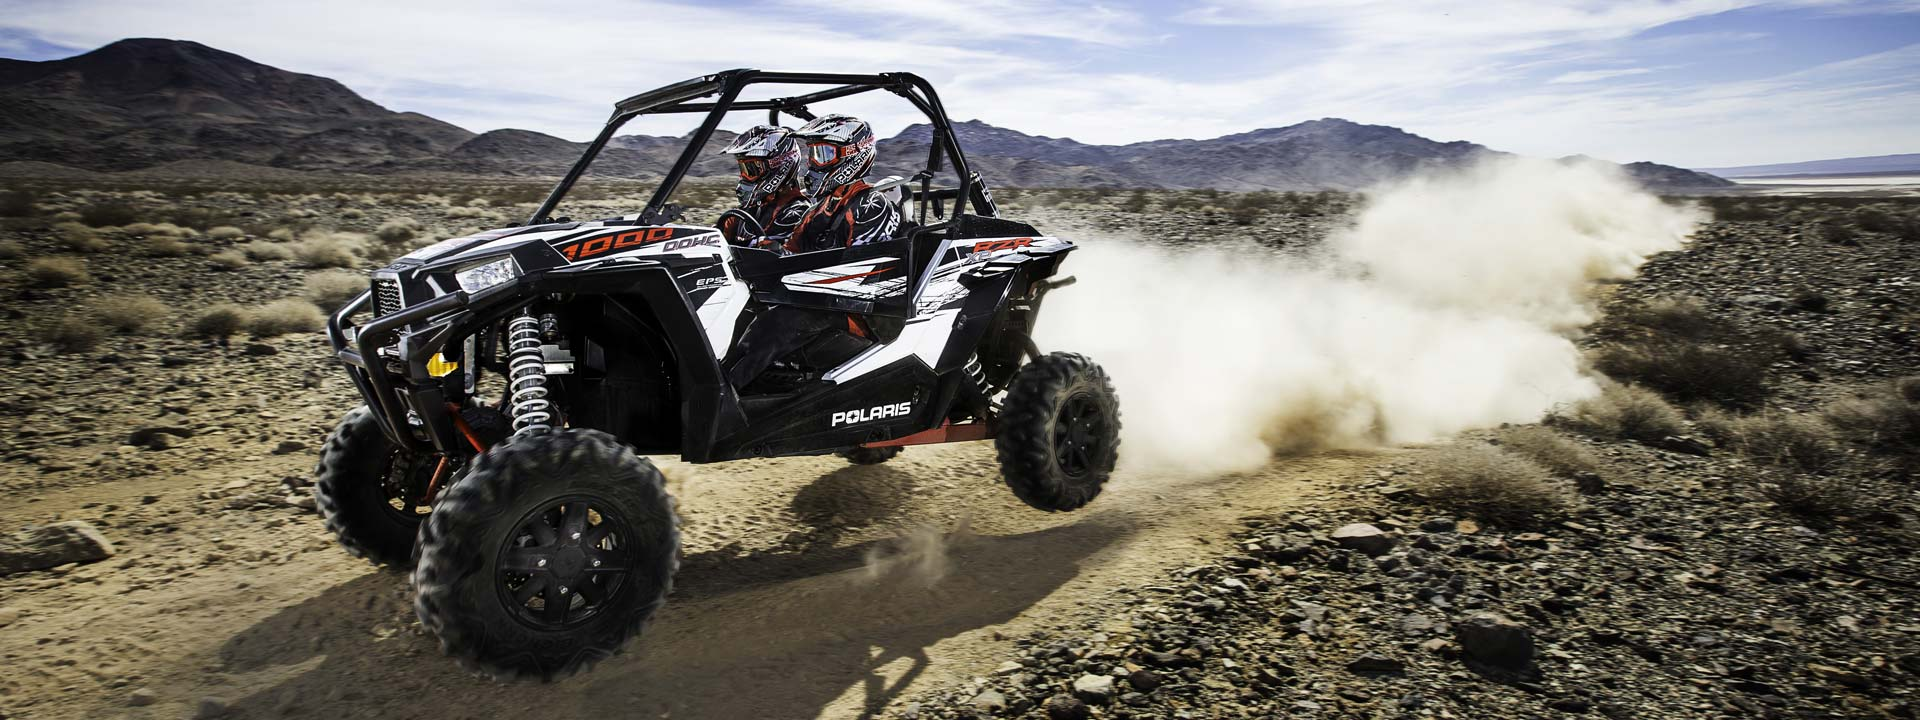 Polaris Recreational Vehicles